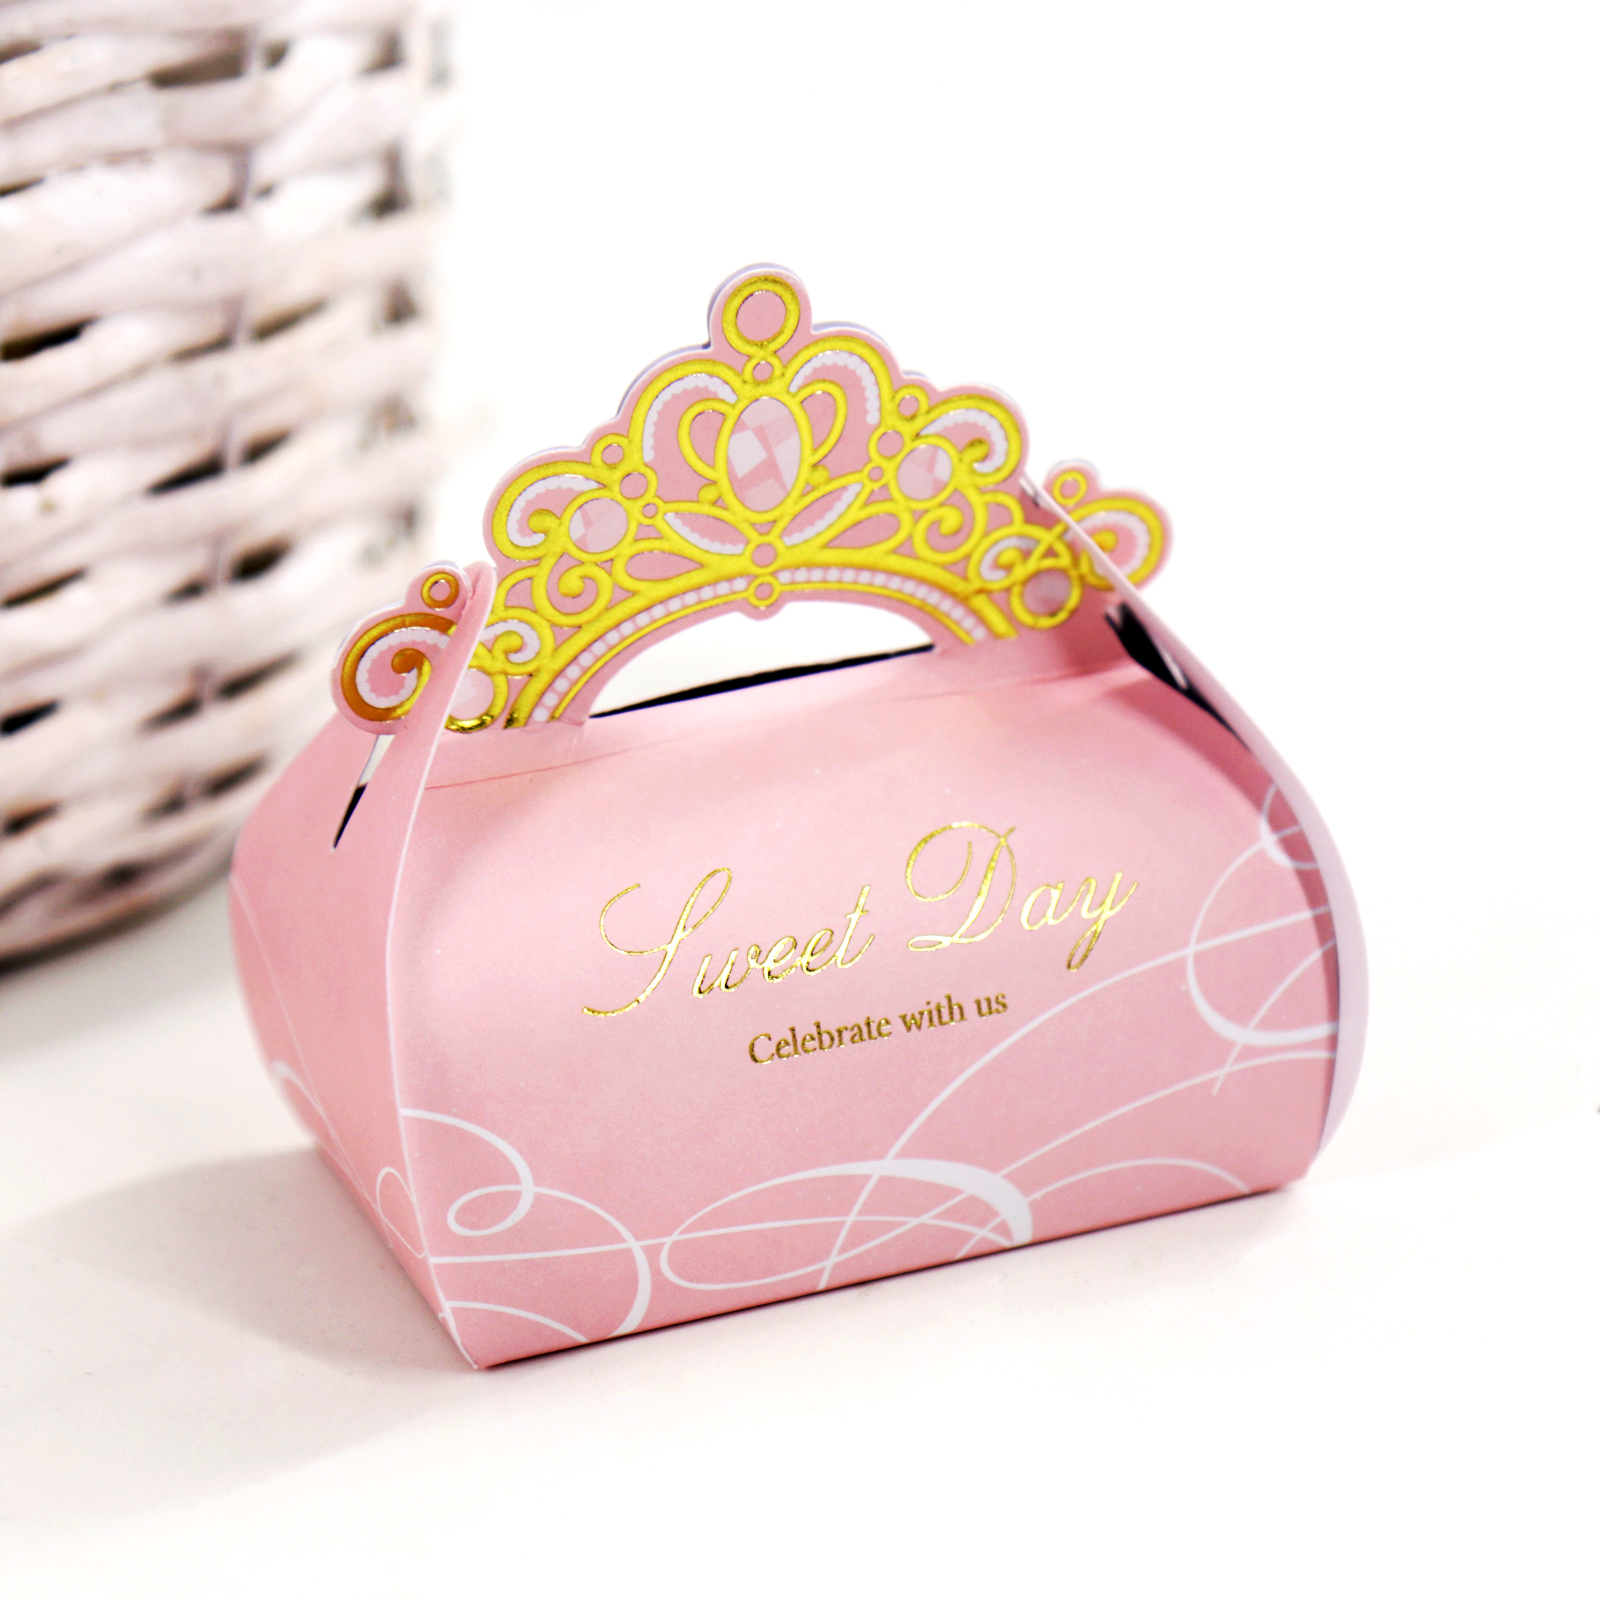 10pcs/lot Bronzing Crown Favor Candy Box For Wedding Party Birthday Engagement Candy Boxes Chocolate Gift Packaging Box